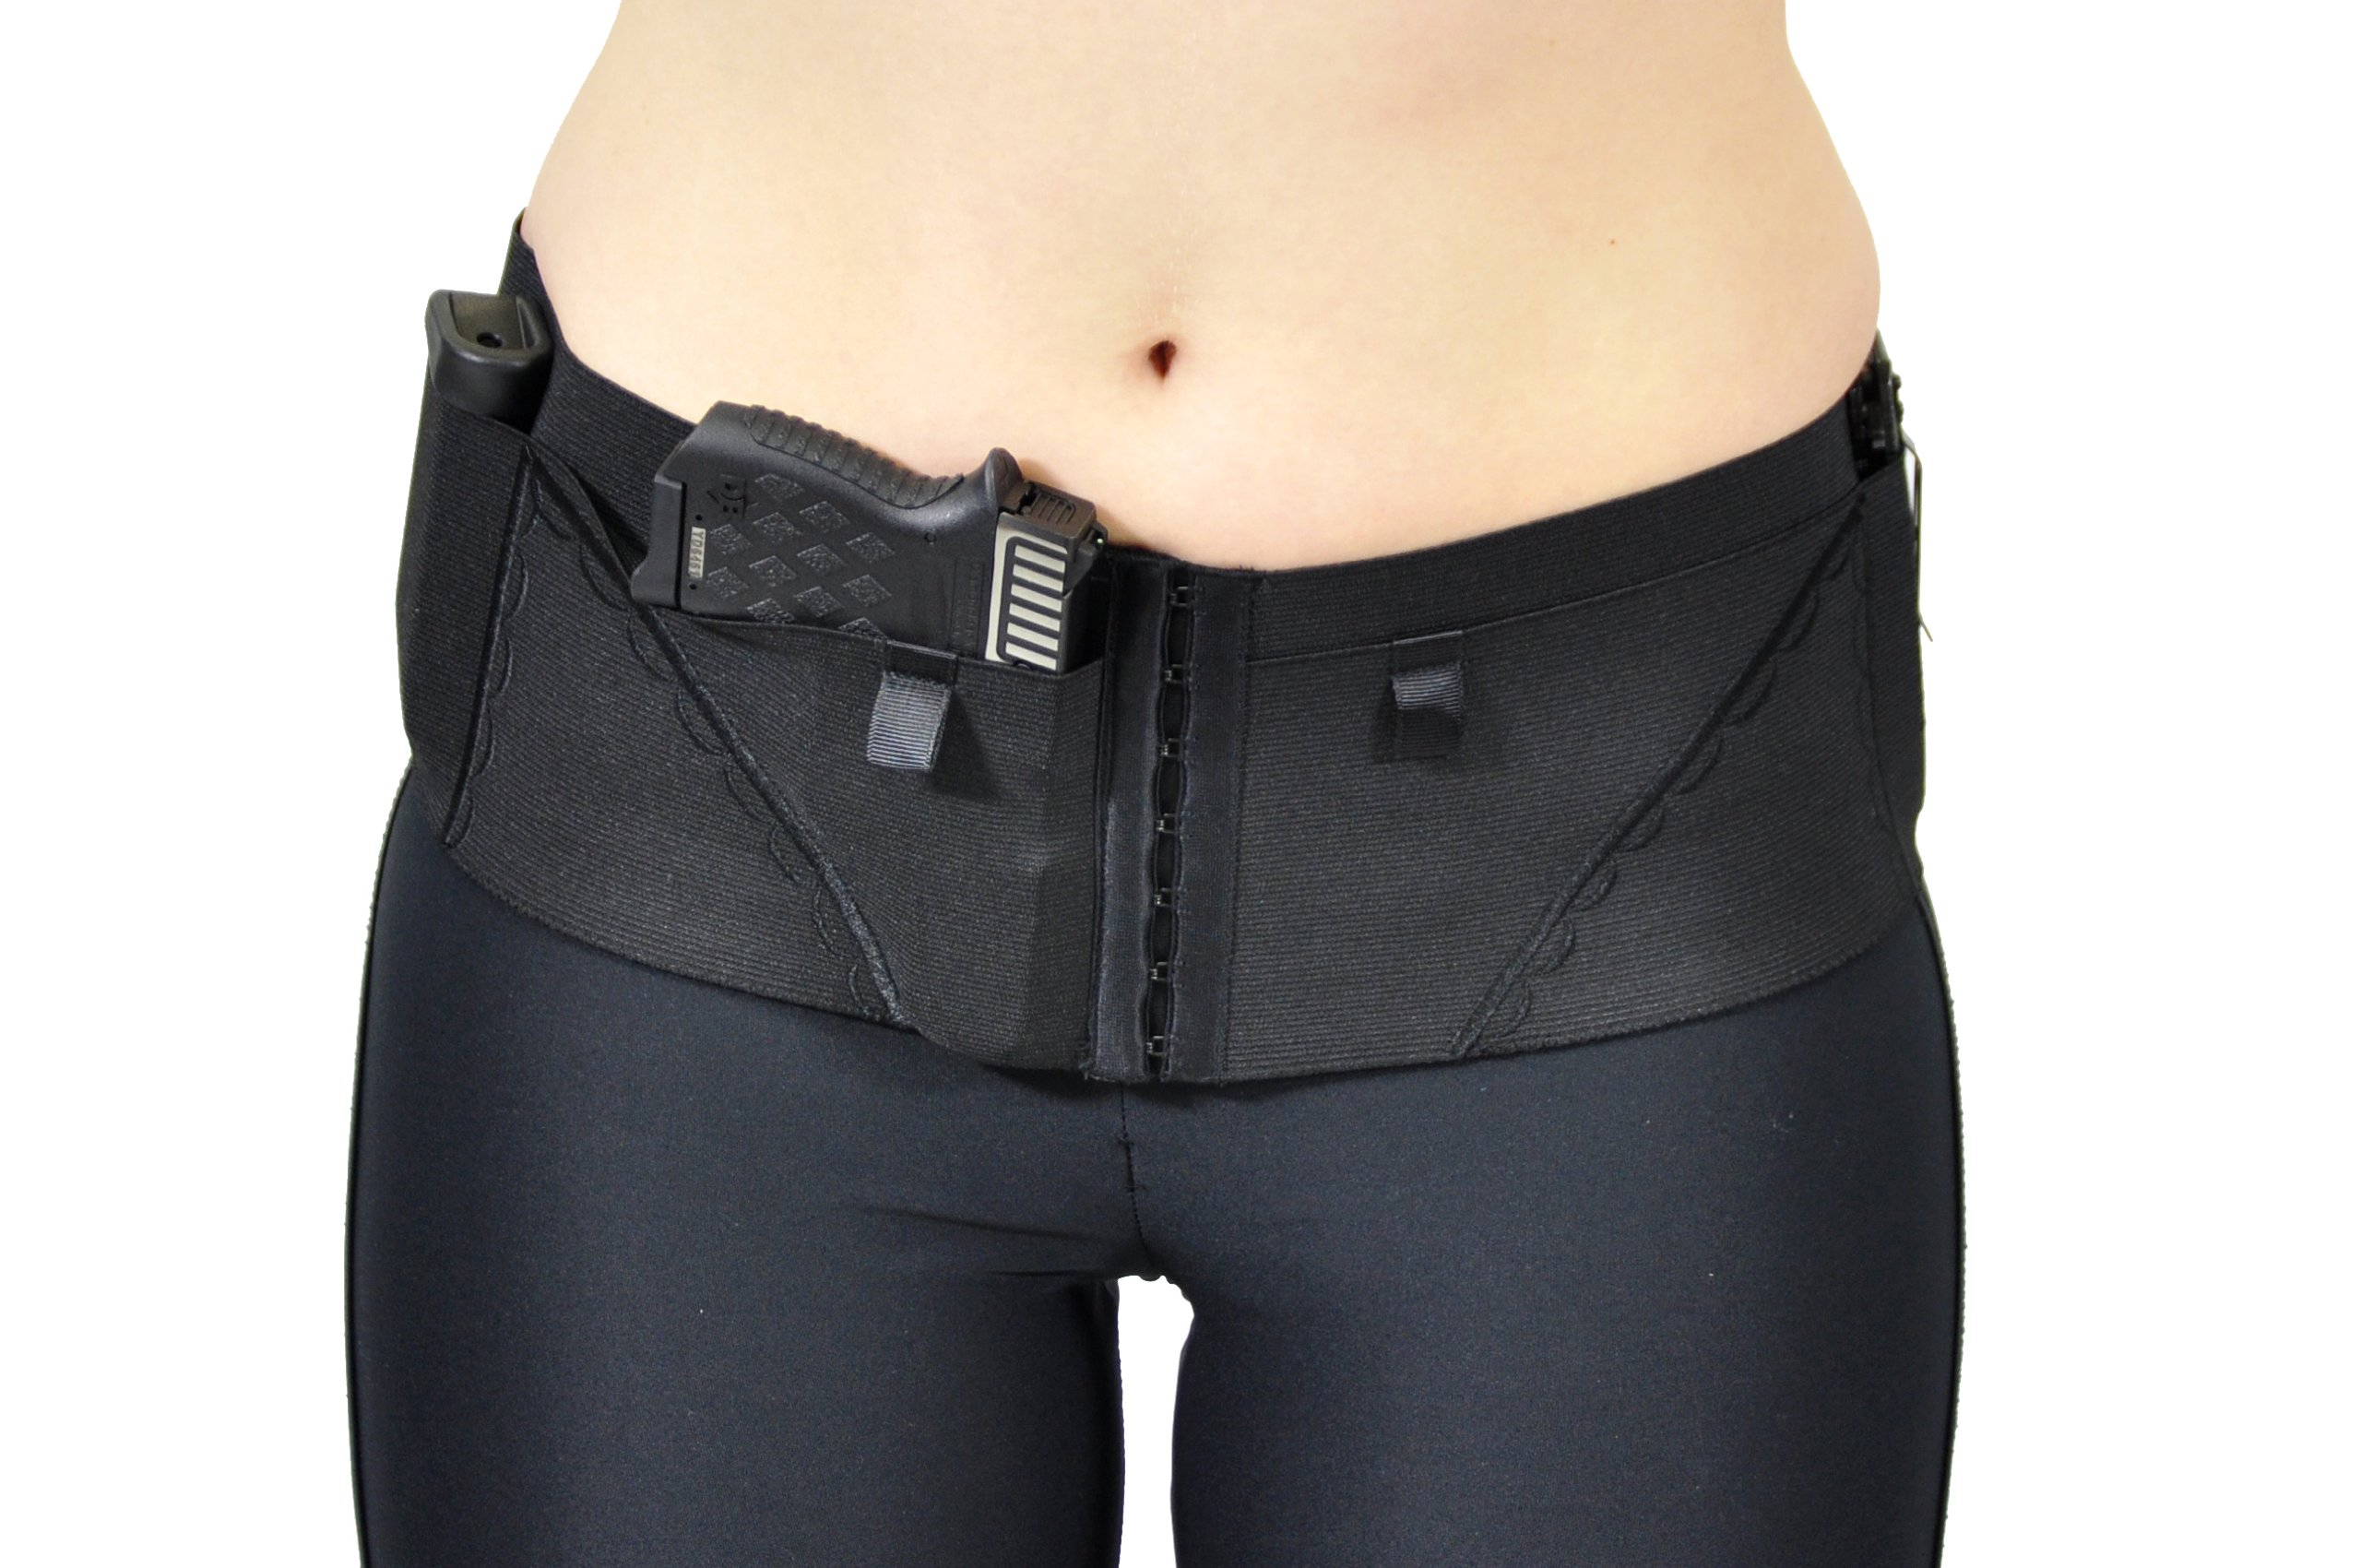 Hip Hugger Classic – Can Can Concealment Women's Concealed Carry Holster